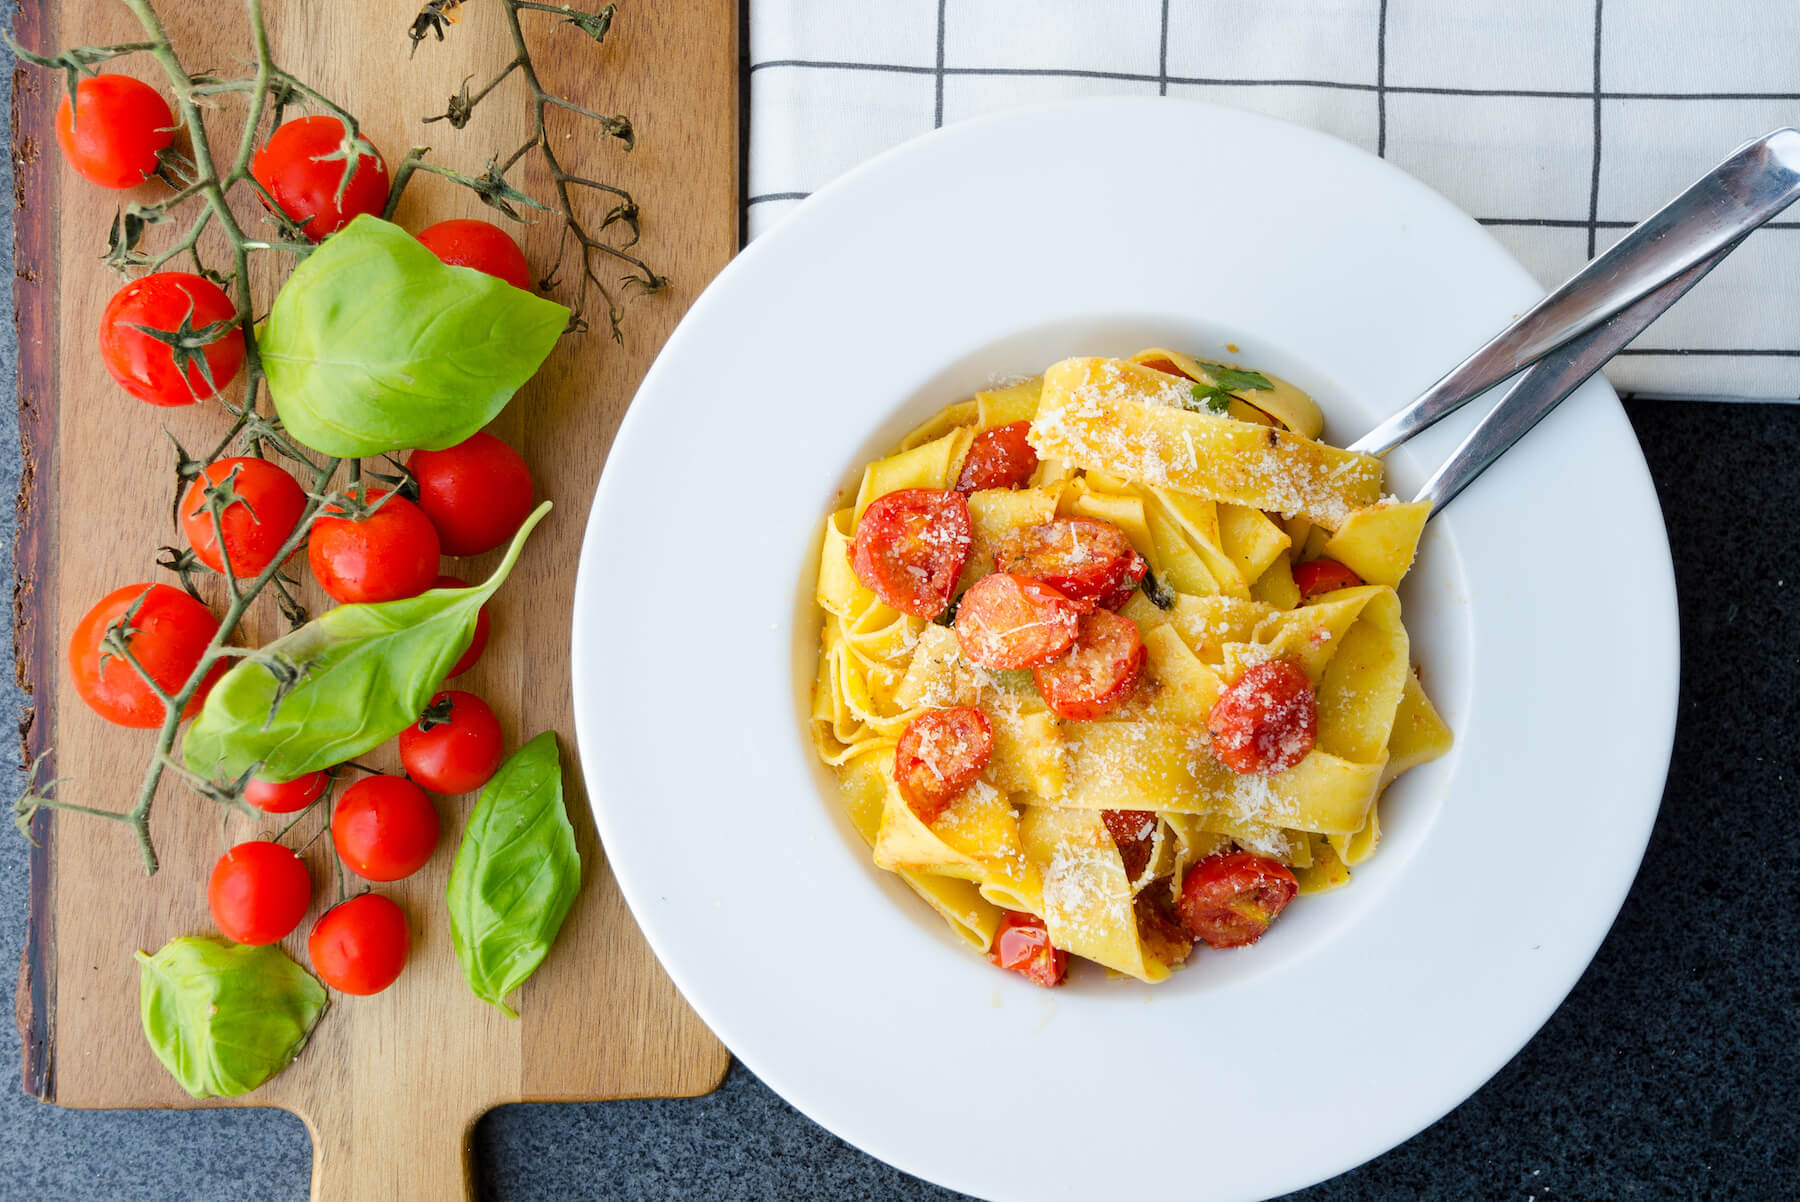 Pappardelle ugnsrostade tomater